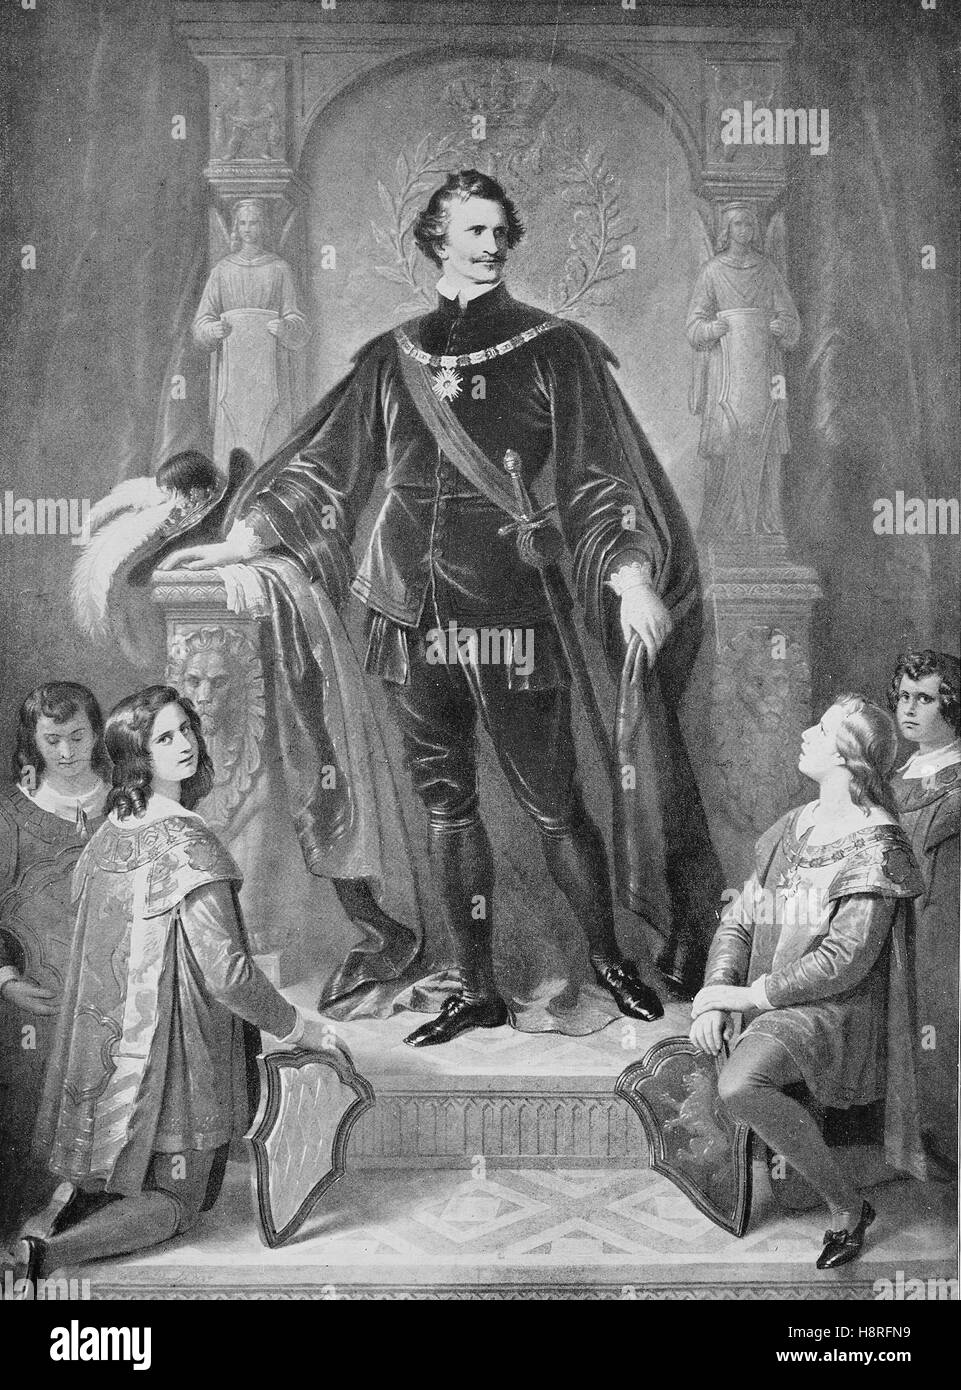 Ludwig I, Louis I was king of Bavaria from 1825 until the 1848 revolution, here dressed with the costume of the - Stock Image